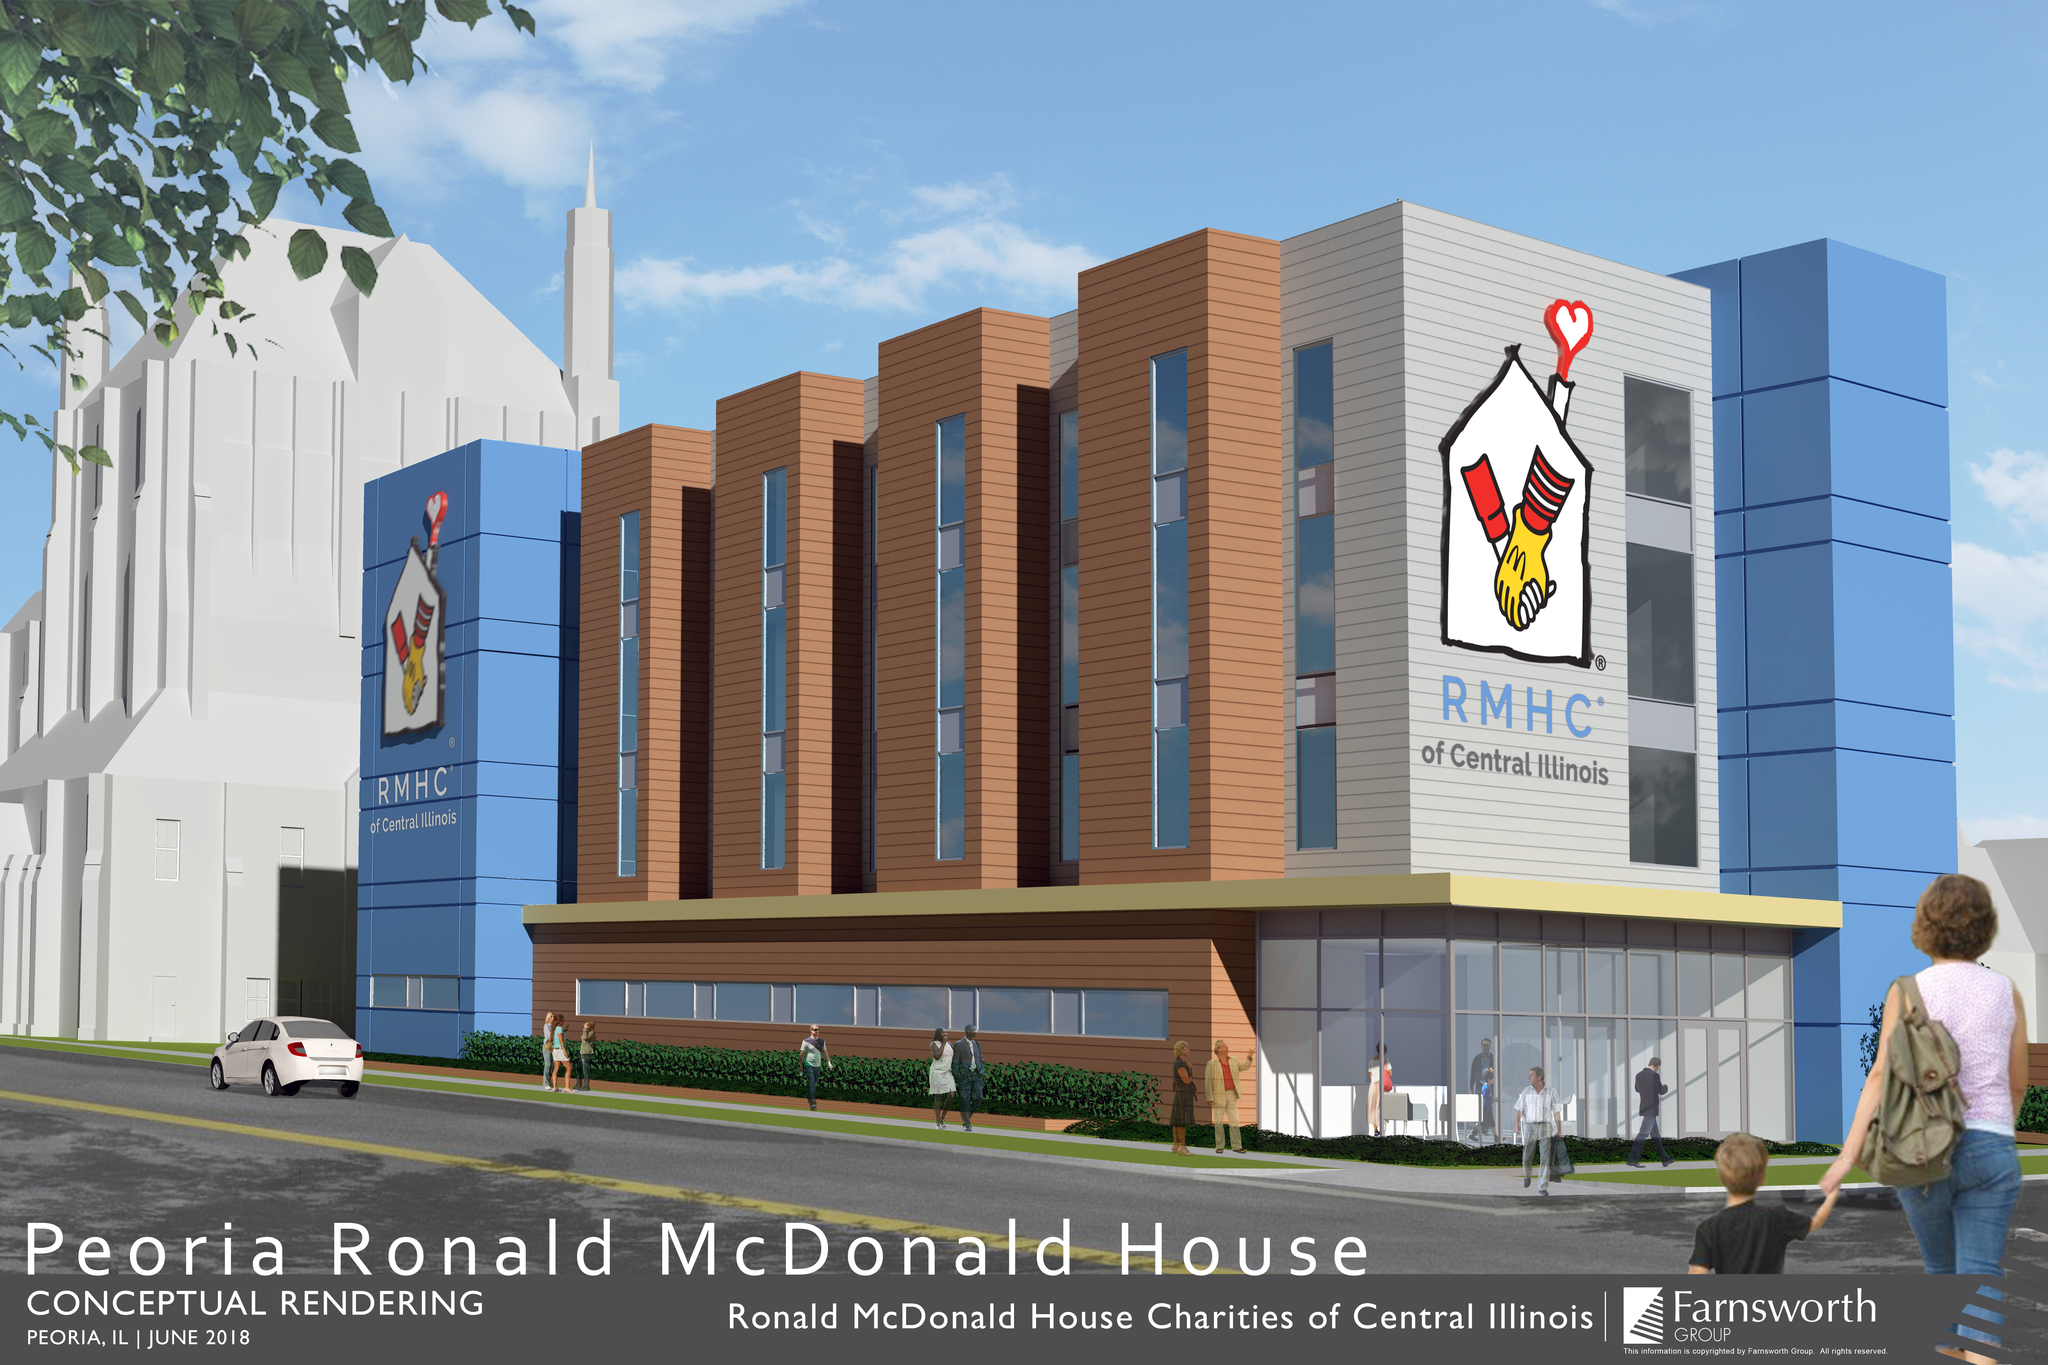 Ronald McDonald House Charities of Central Illinois is the latest addition to the city's medical district.